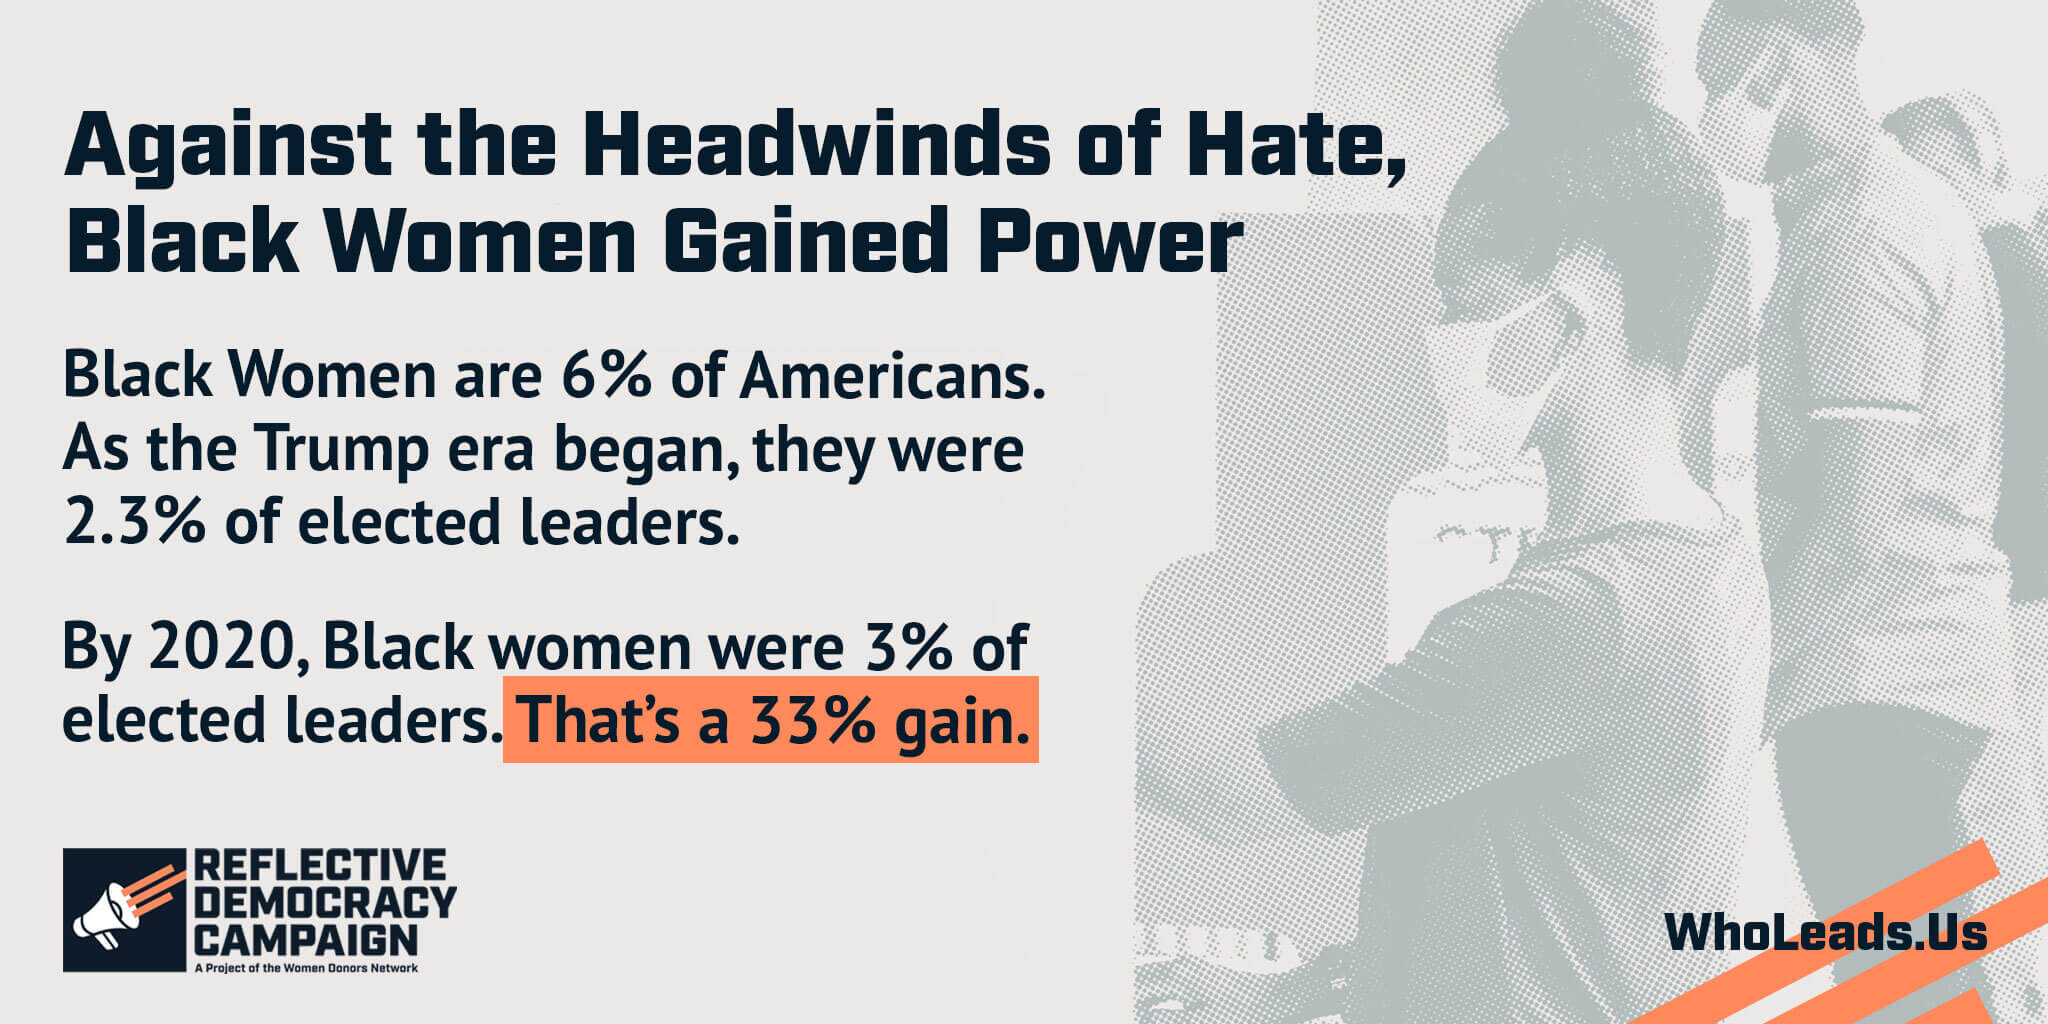 Black women are 6% of Americans. As the Trump era began, they were 2.3% of elected leaders. In 2020, they were 3%. That is a 33% gain.